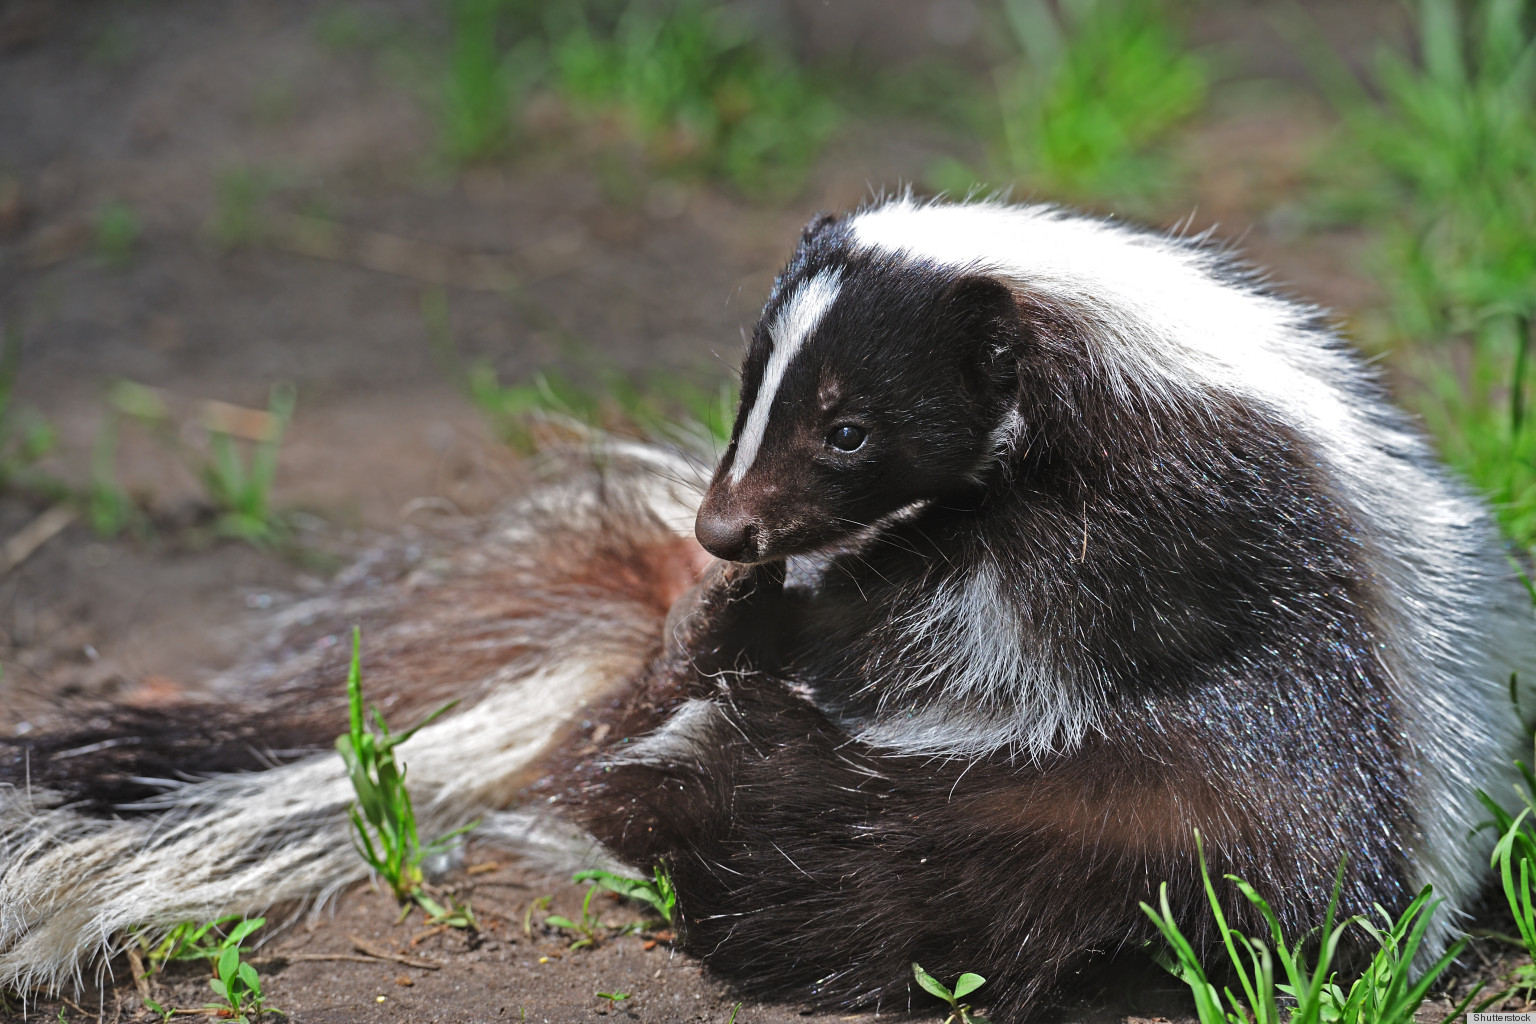 Removing Odors From Home remove skunk odors from your home with just some vinegar | huffpost